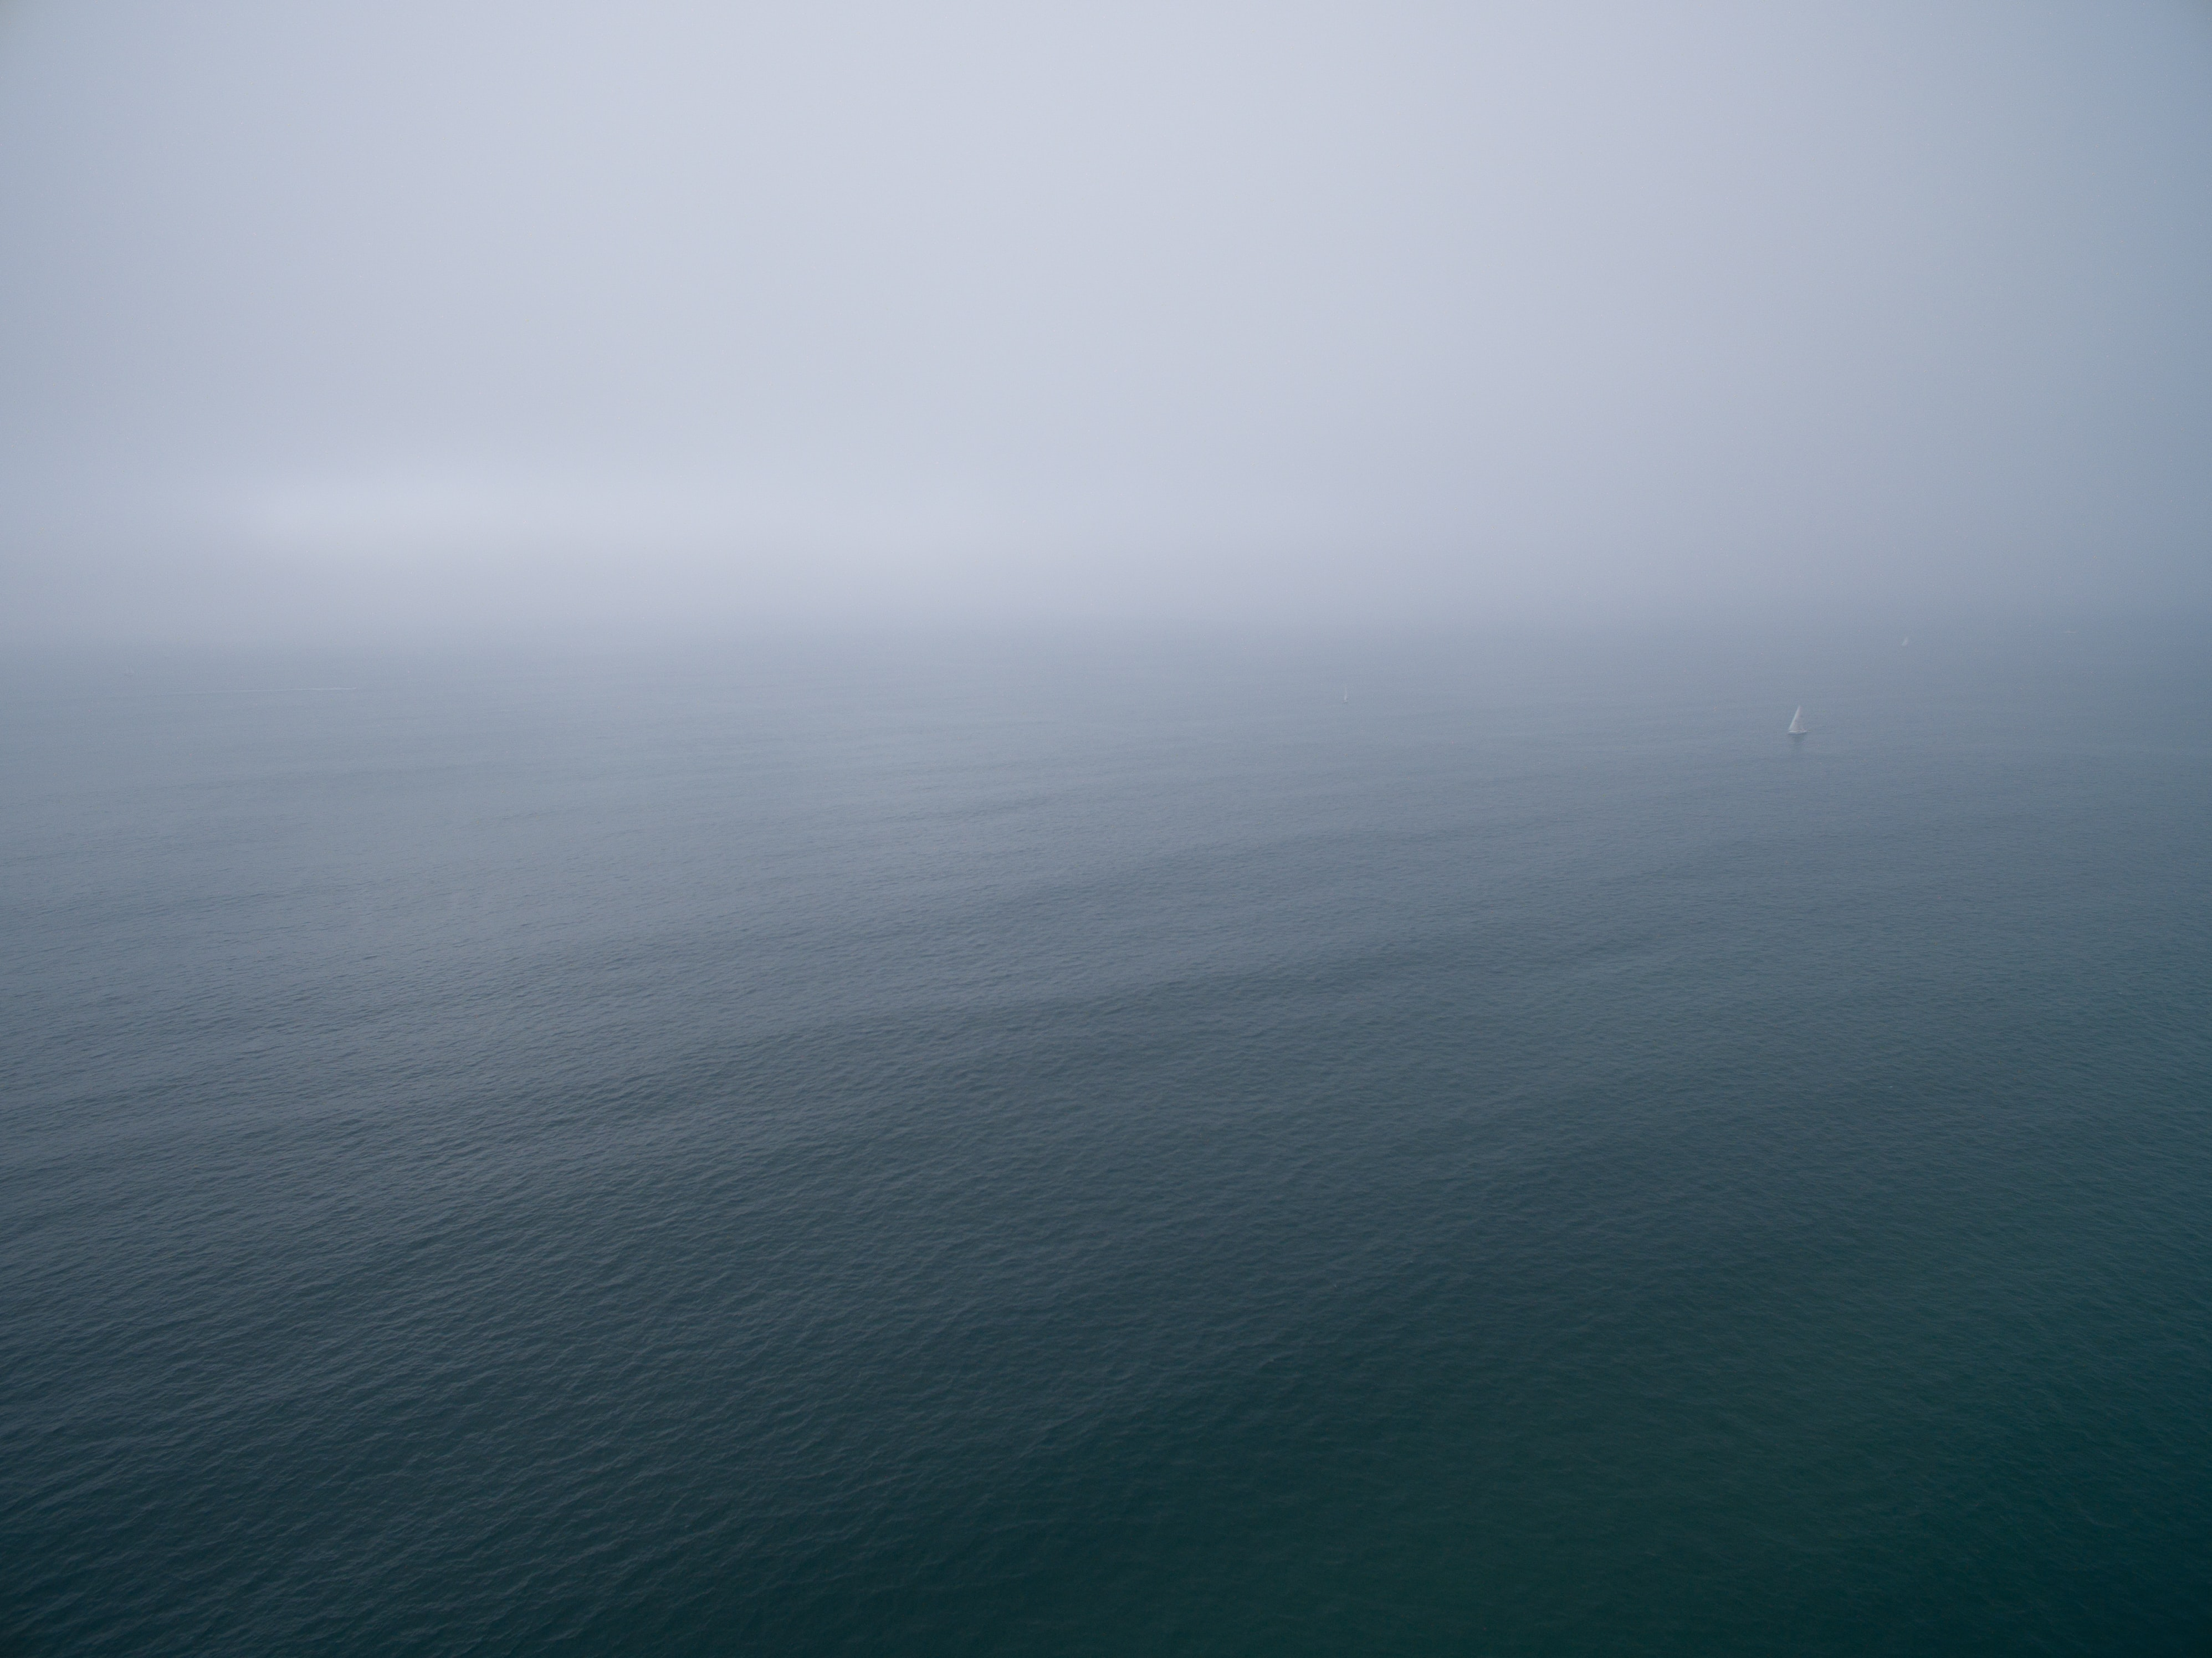 top view of ocean under grey clouds